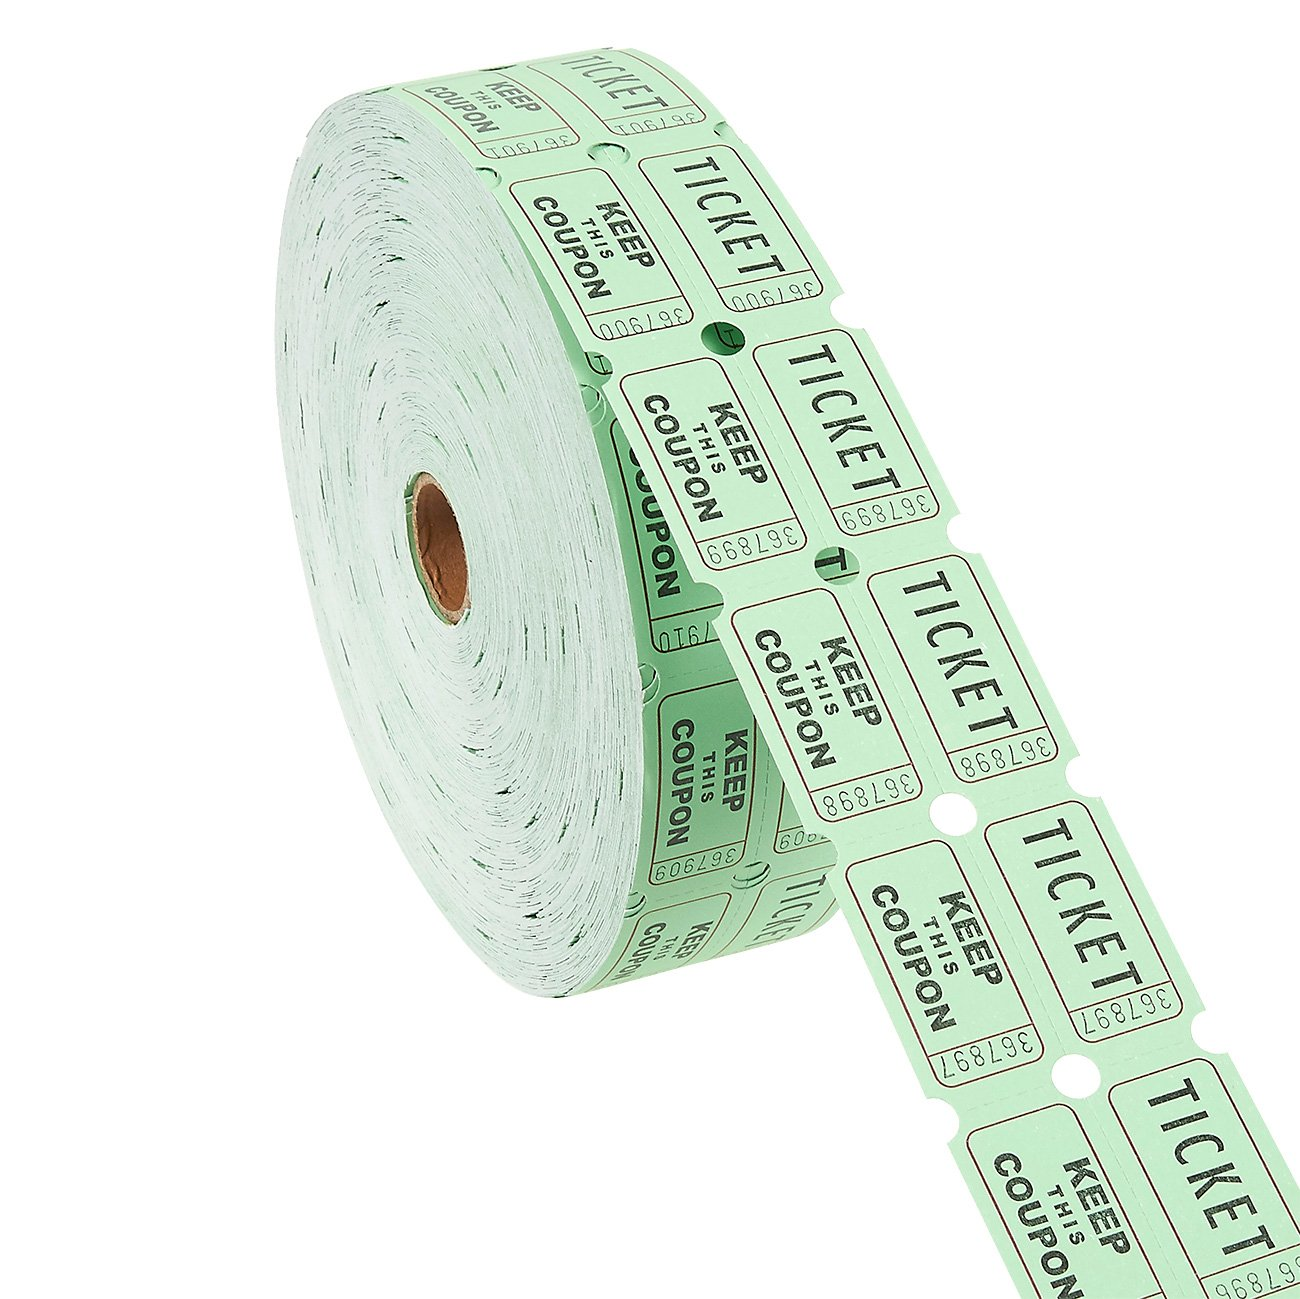 Raffle Tickets Roll - Double Roll of 2000-Count 50/50 Ticket Coupons, Green